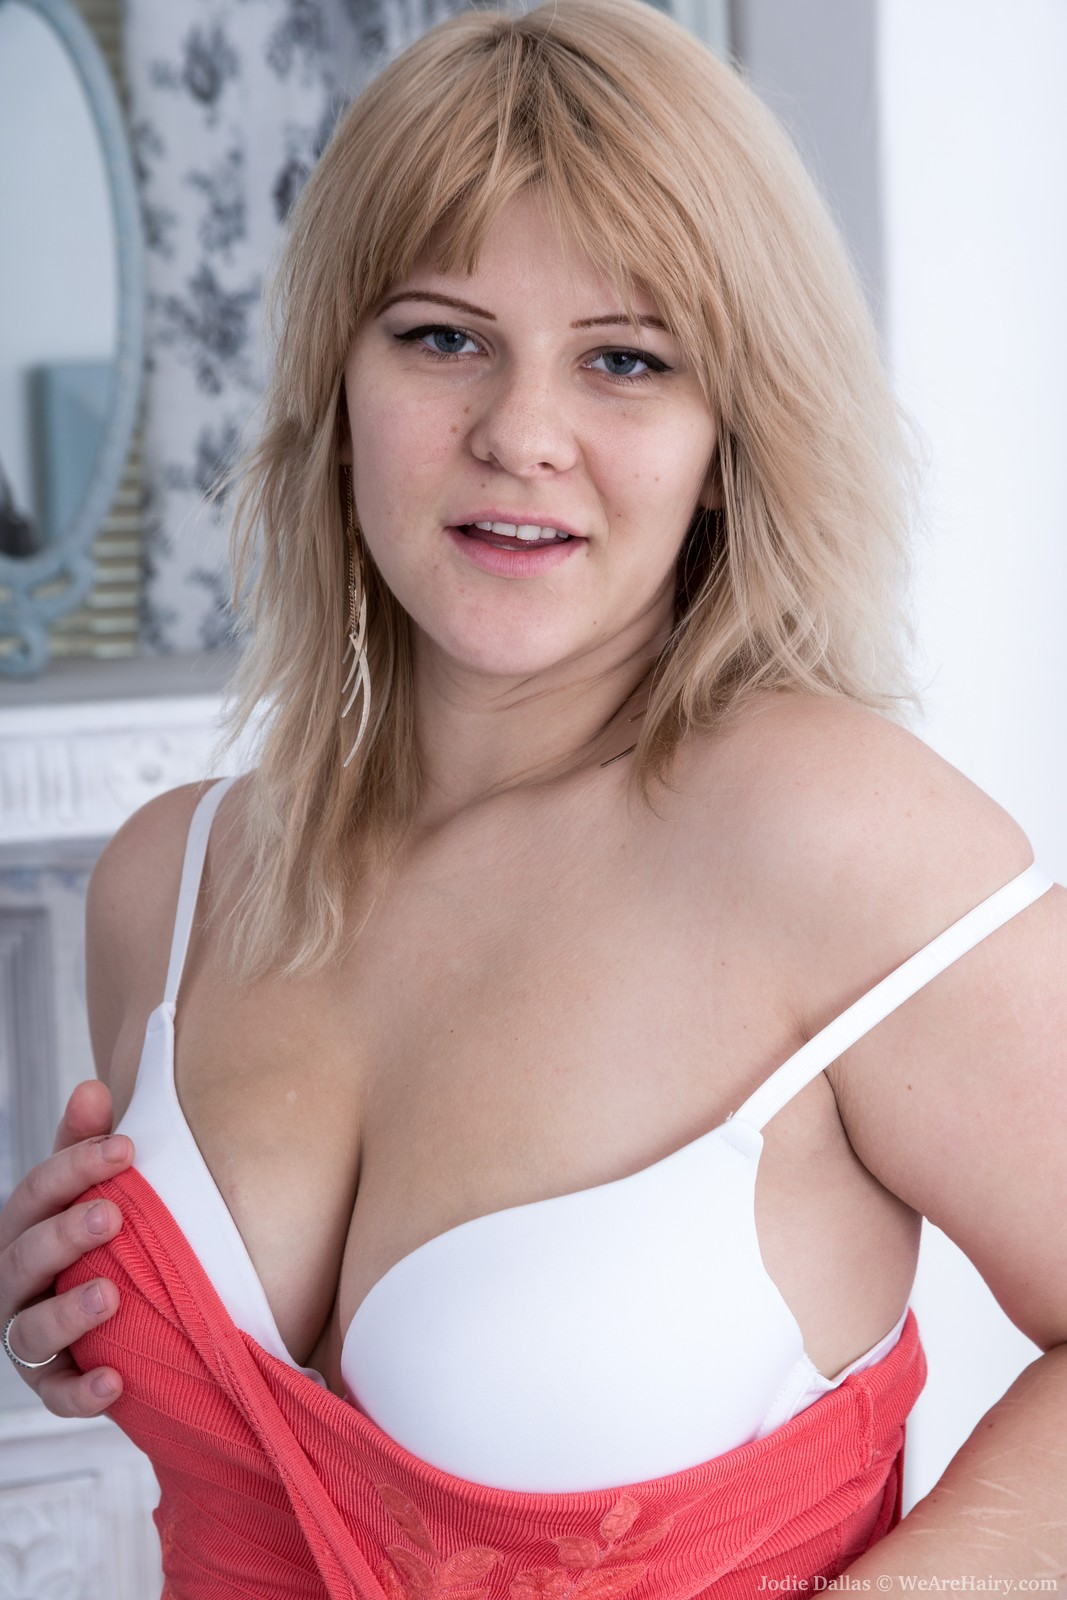 Chubby blonde Jodie Dallas